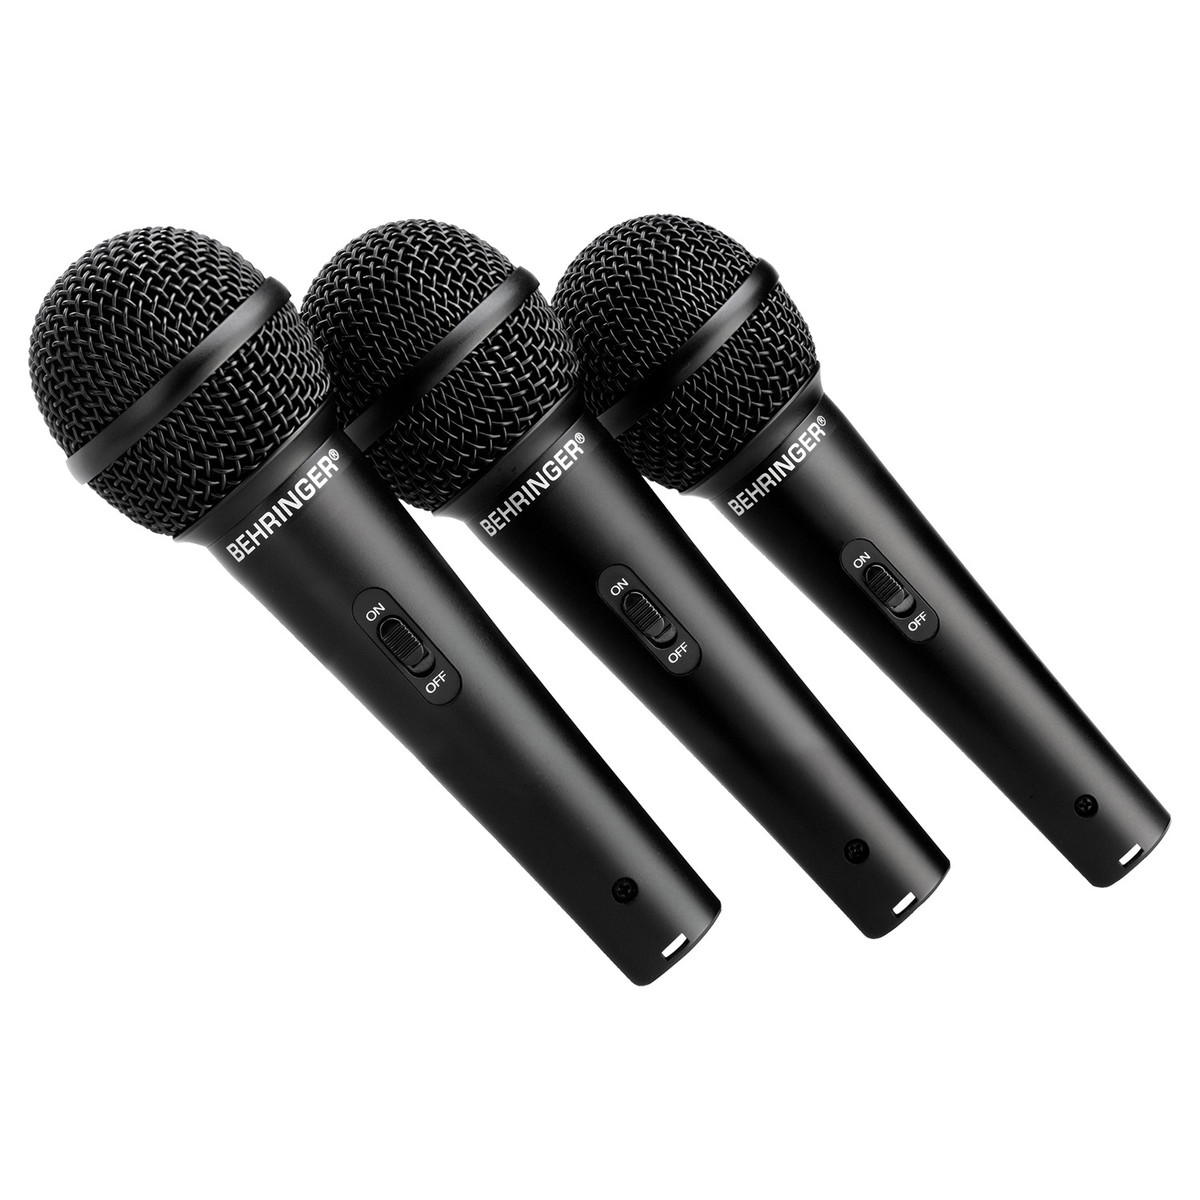 behringer xm1800s ultravoice dynamic microphone 3 pack at. Black Bedroom Furniture Sets. Home Design Ideas